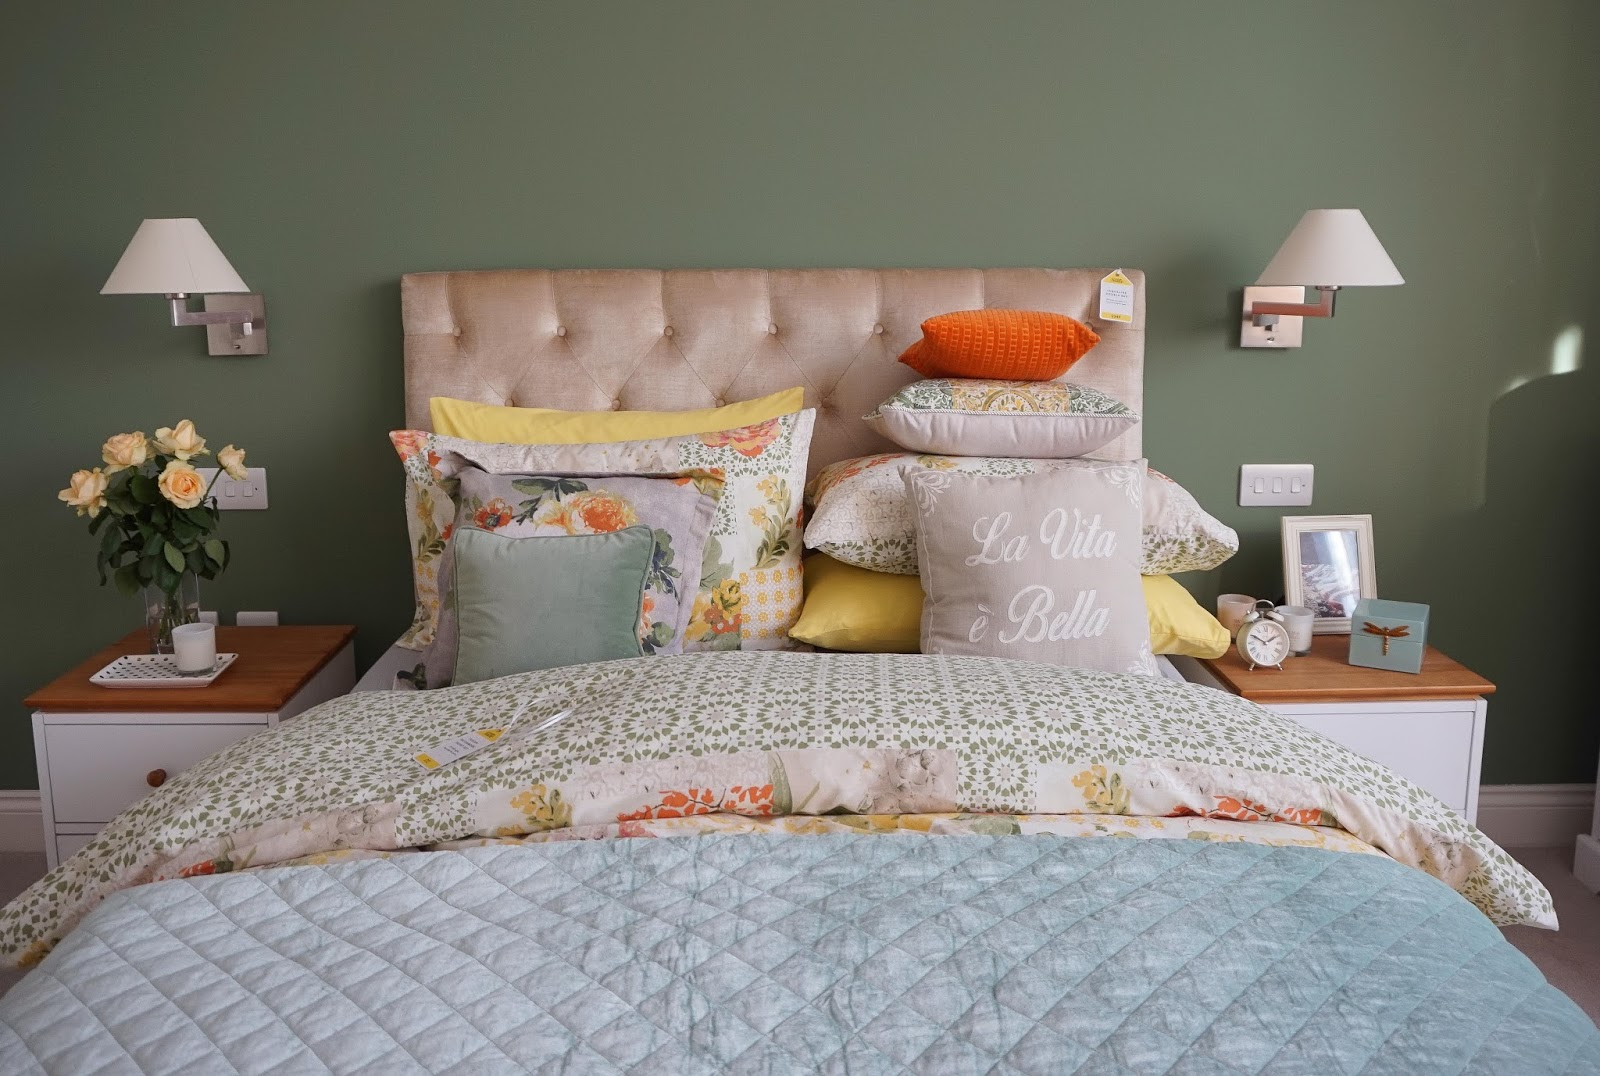 Side street style redecorating your bedroom on a budget for Redecorating bedroom